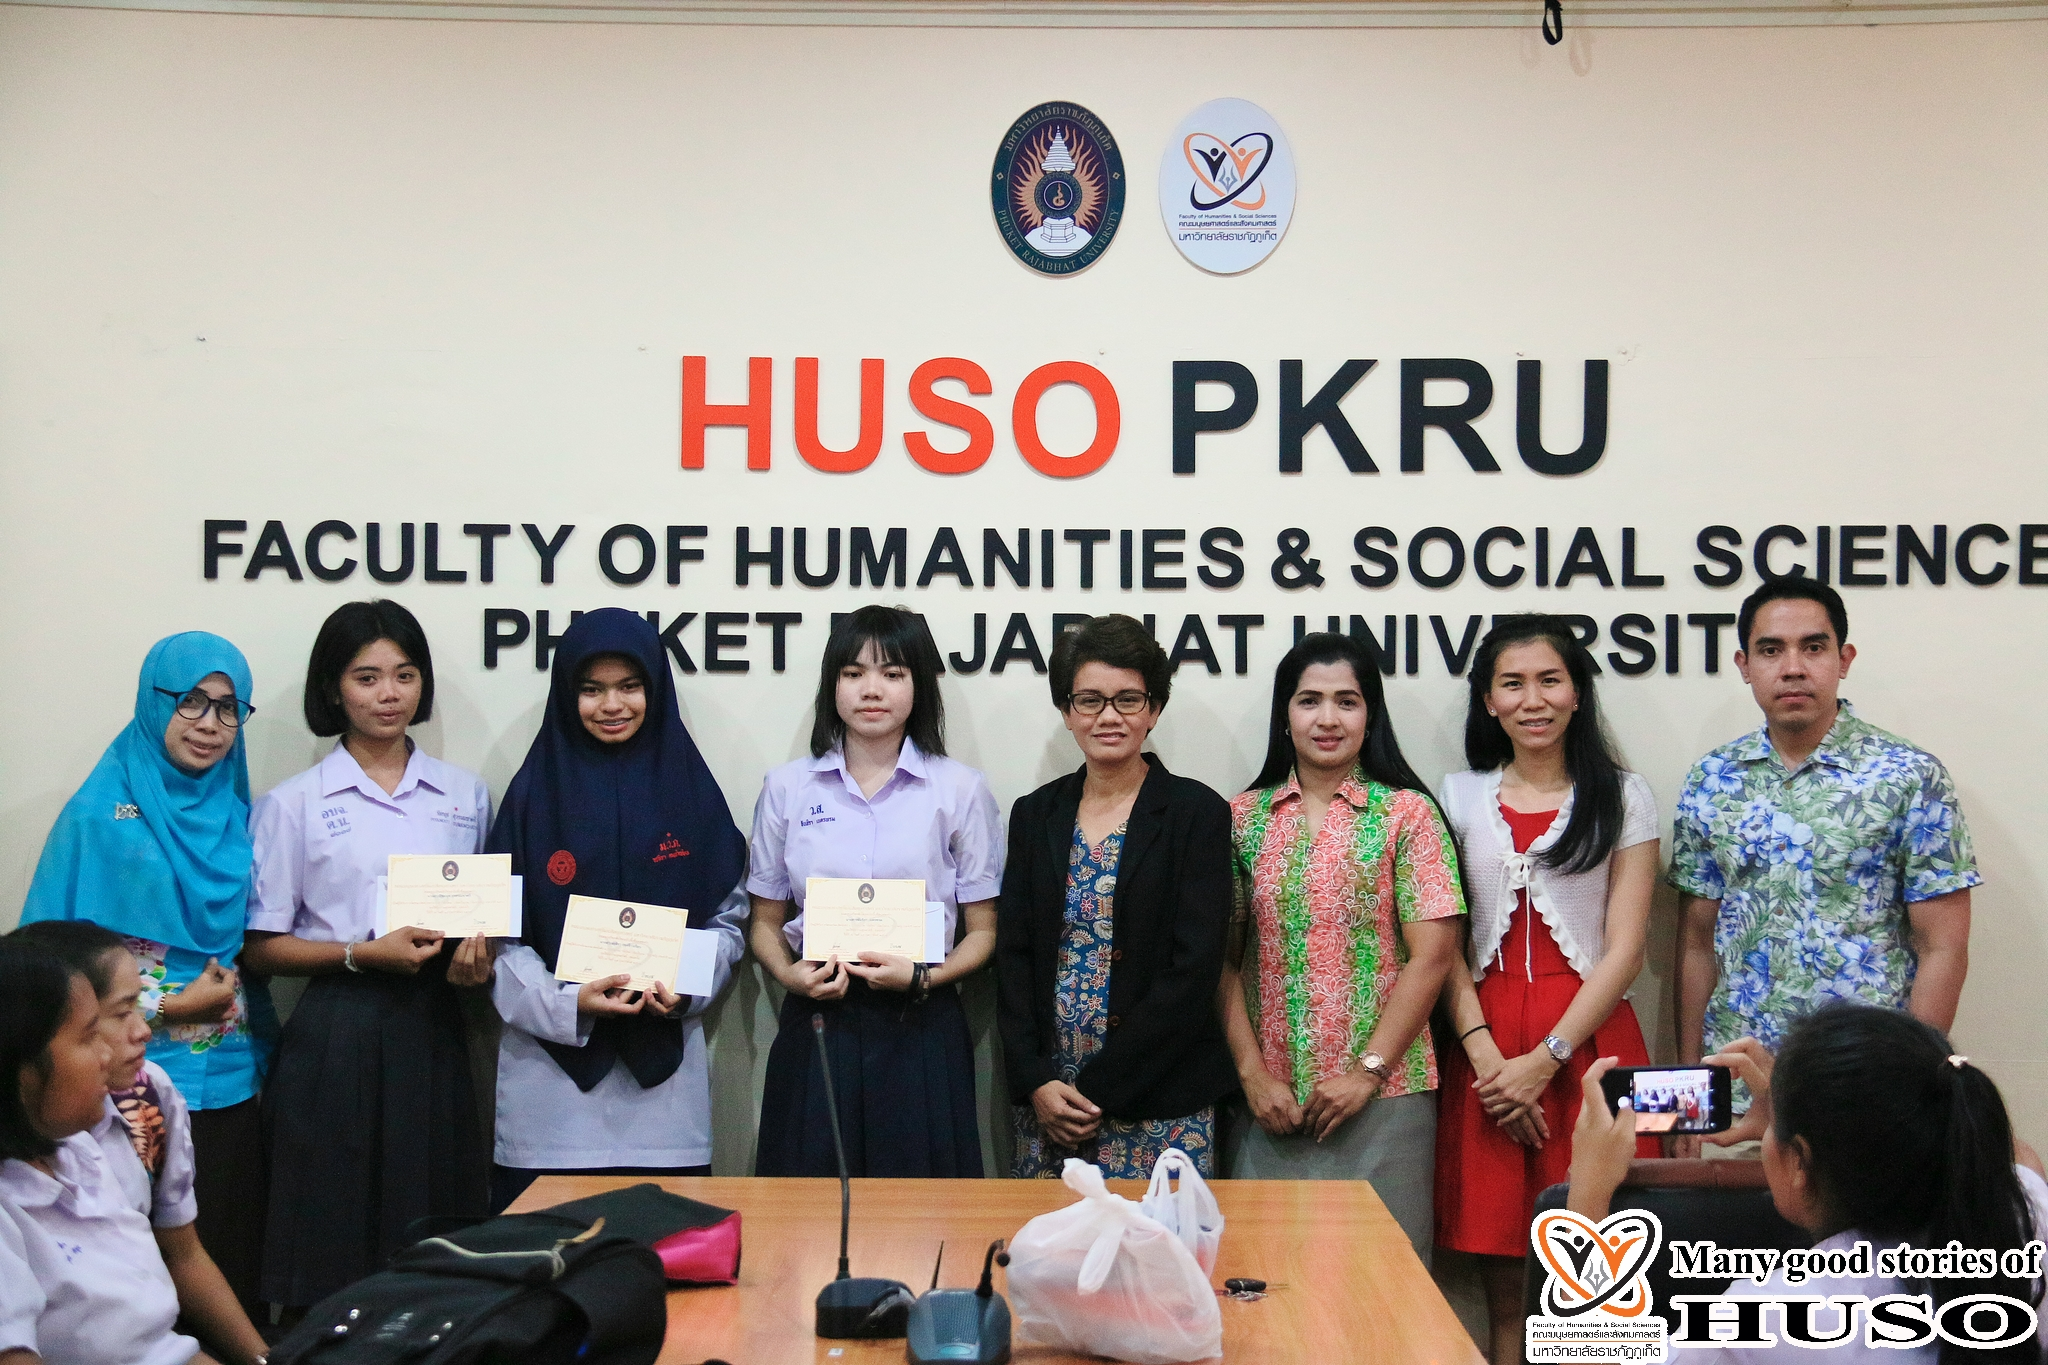 HUSO PKRU Thai Program Academic Skills Competition Thai Handwriting 15 February 2018 12